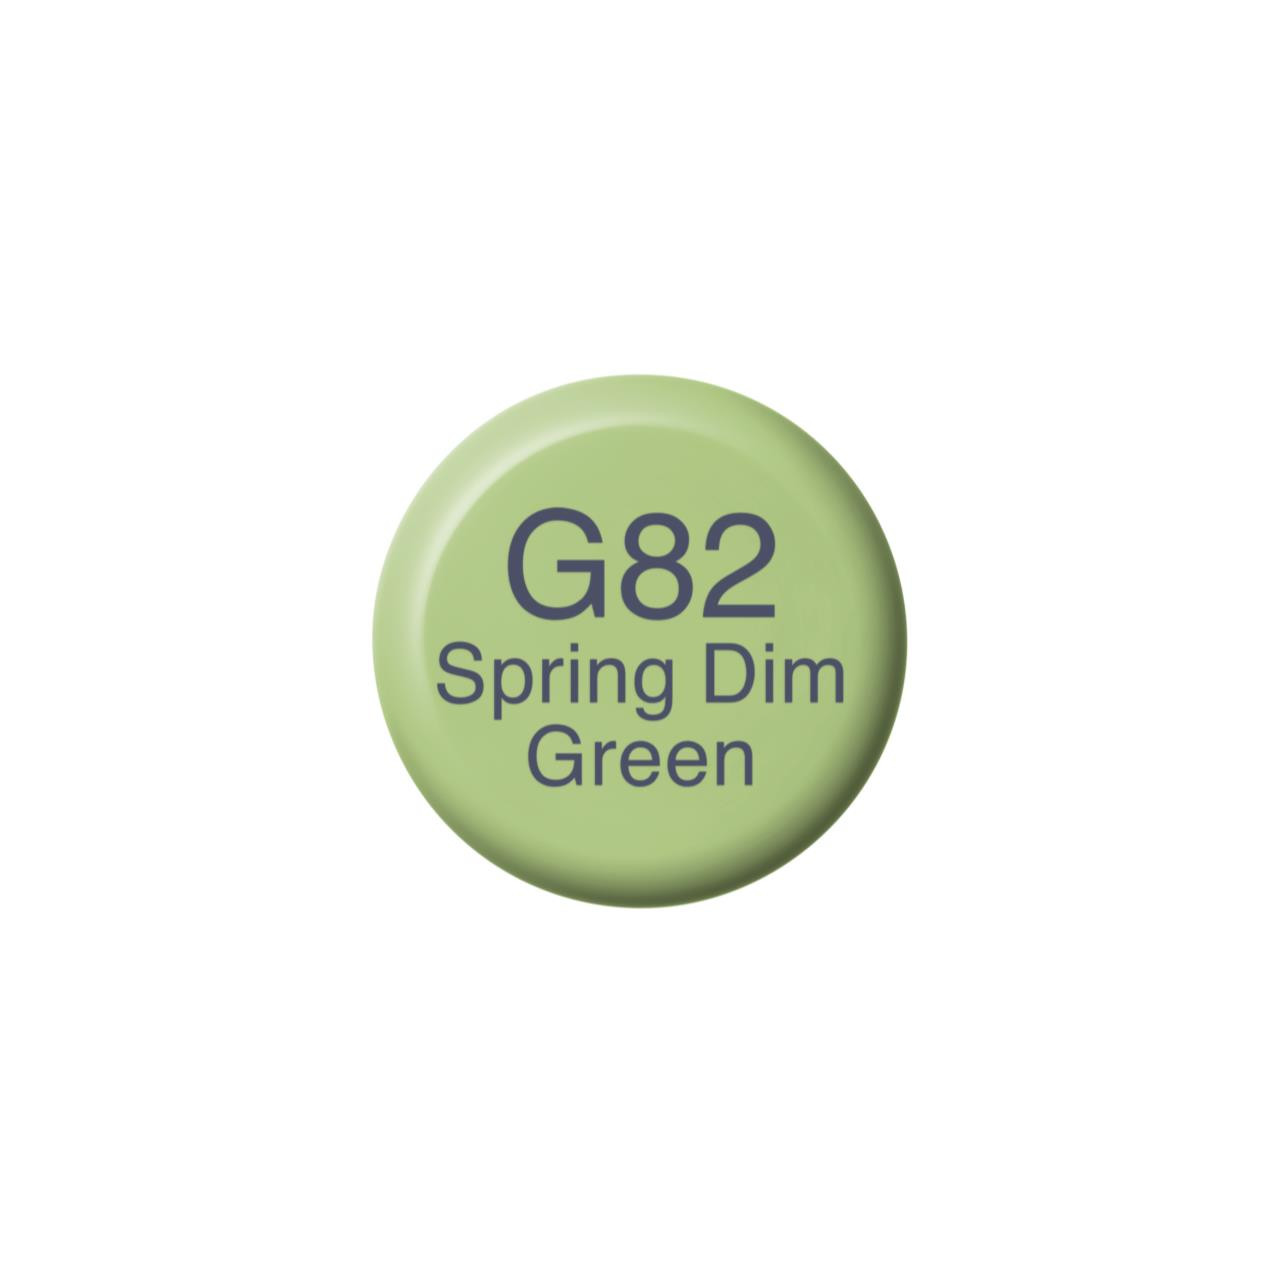 G82 Spring Dim Green, Copic Ink - 4511338057322